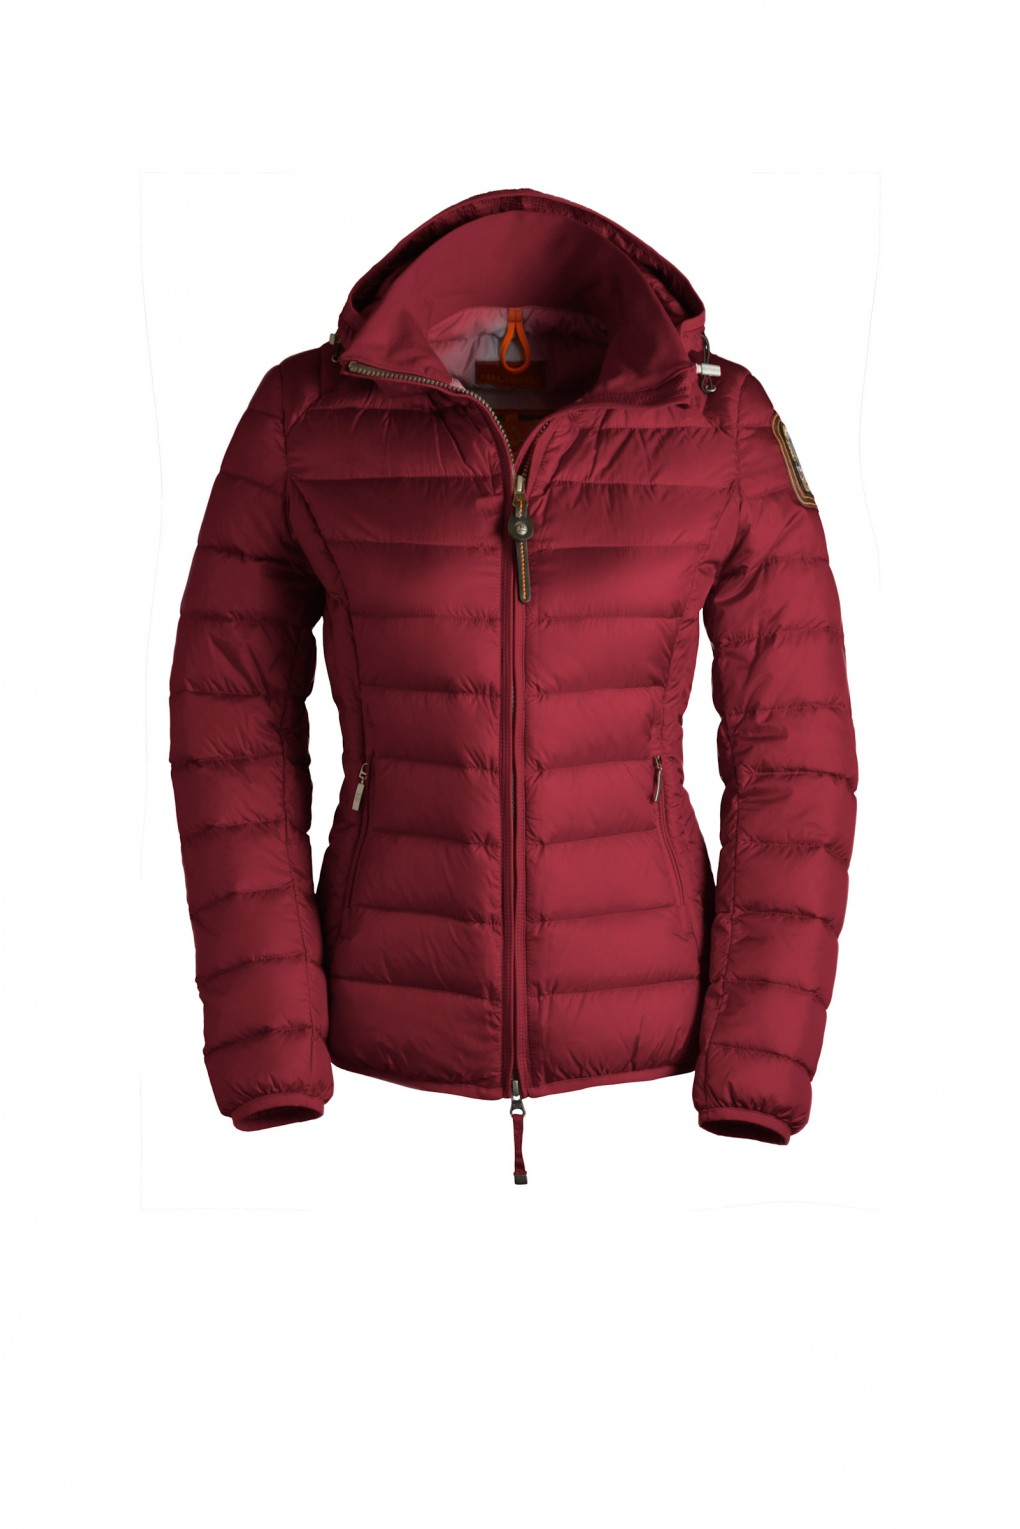 parajumpers JULIET6 woman outerwear Red